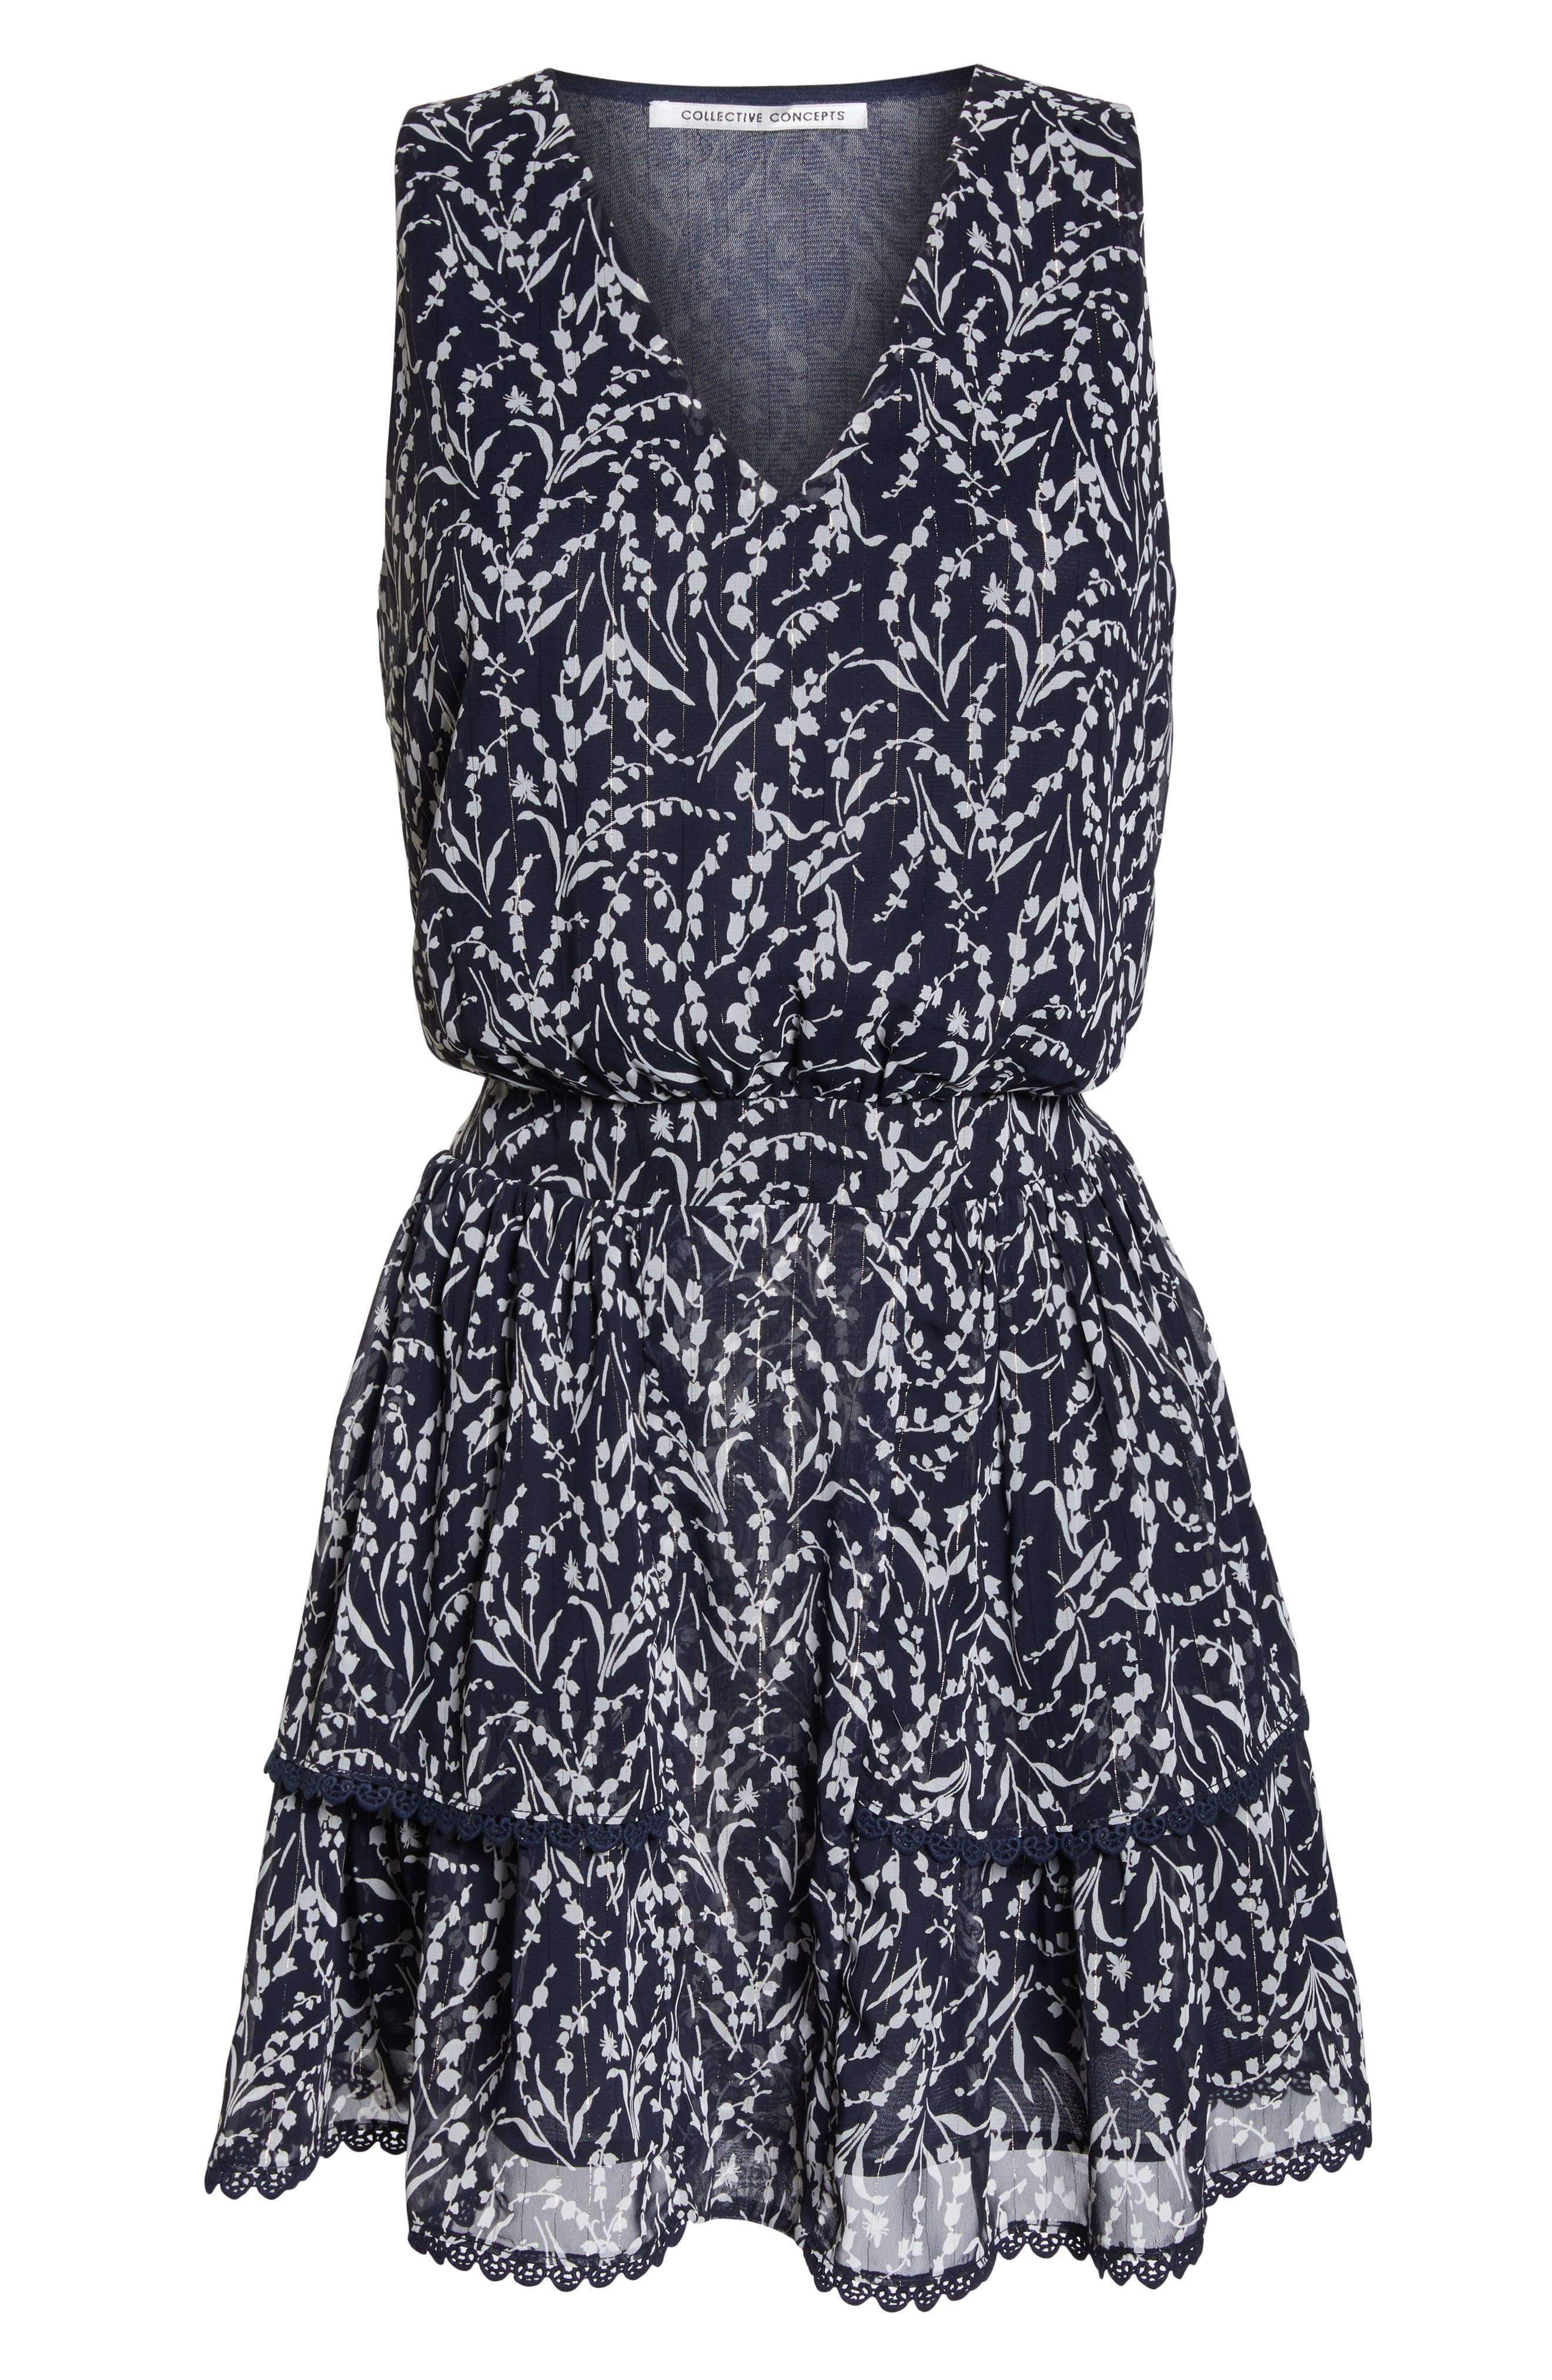 19 COOPER, Tiered Floral Sleeveless Dress, Alternate thumbnail 7, color, NAVY/ WHITE